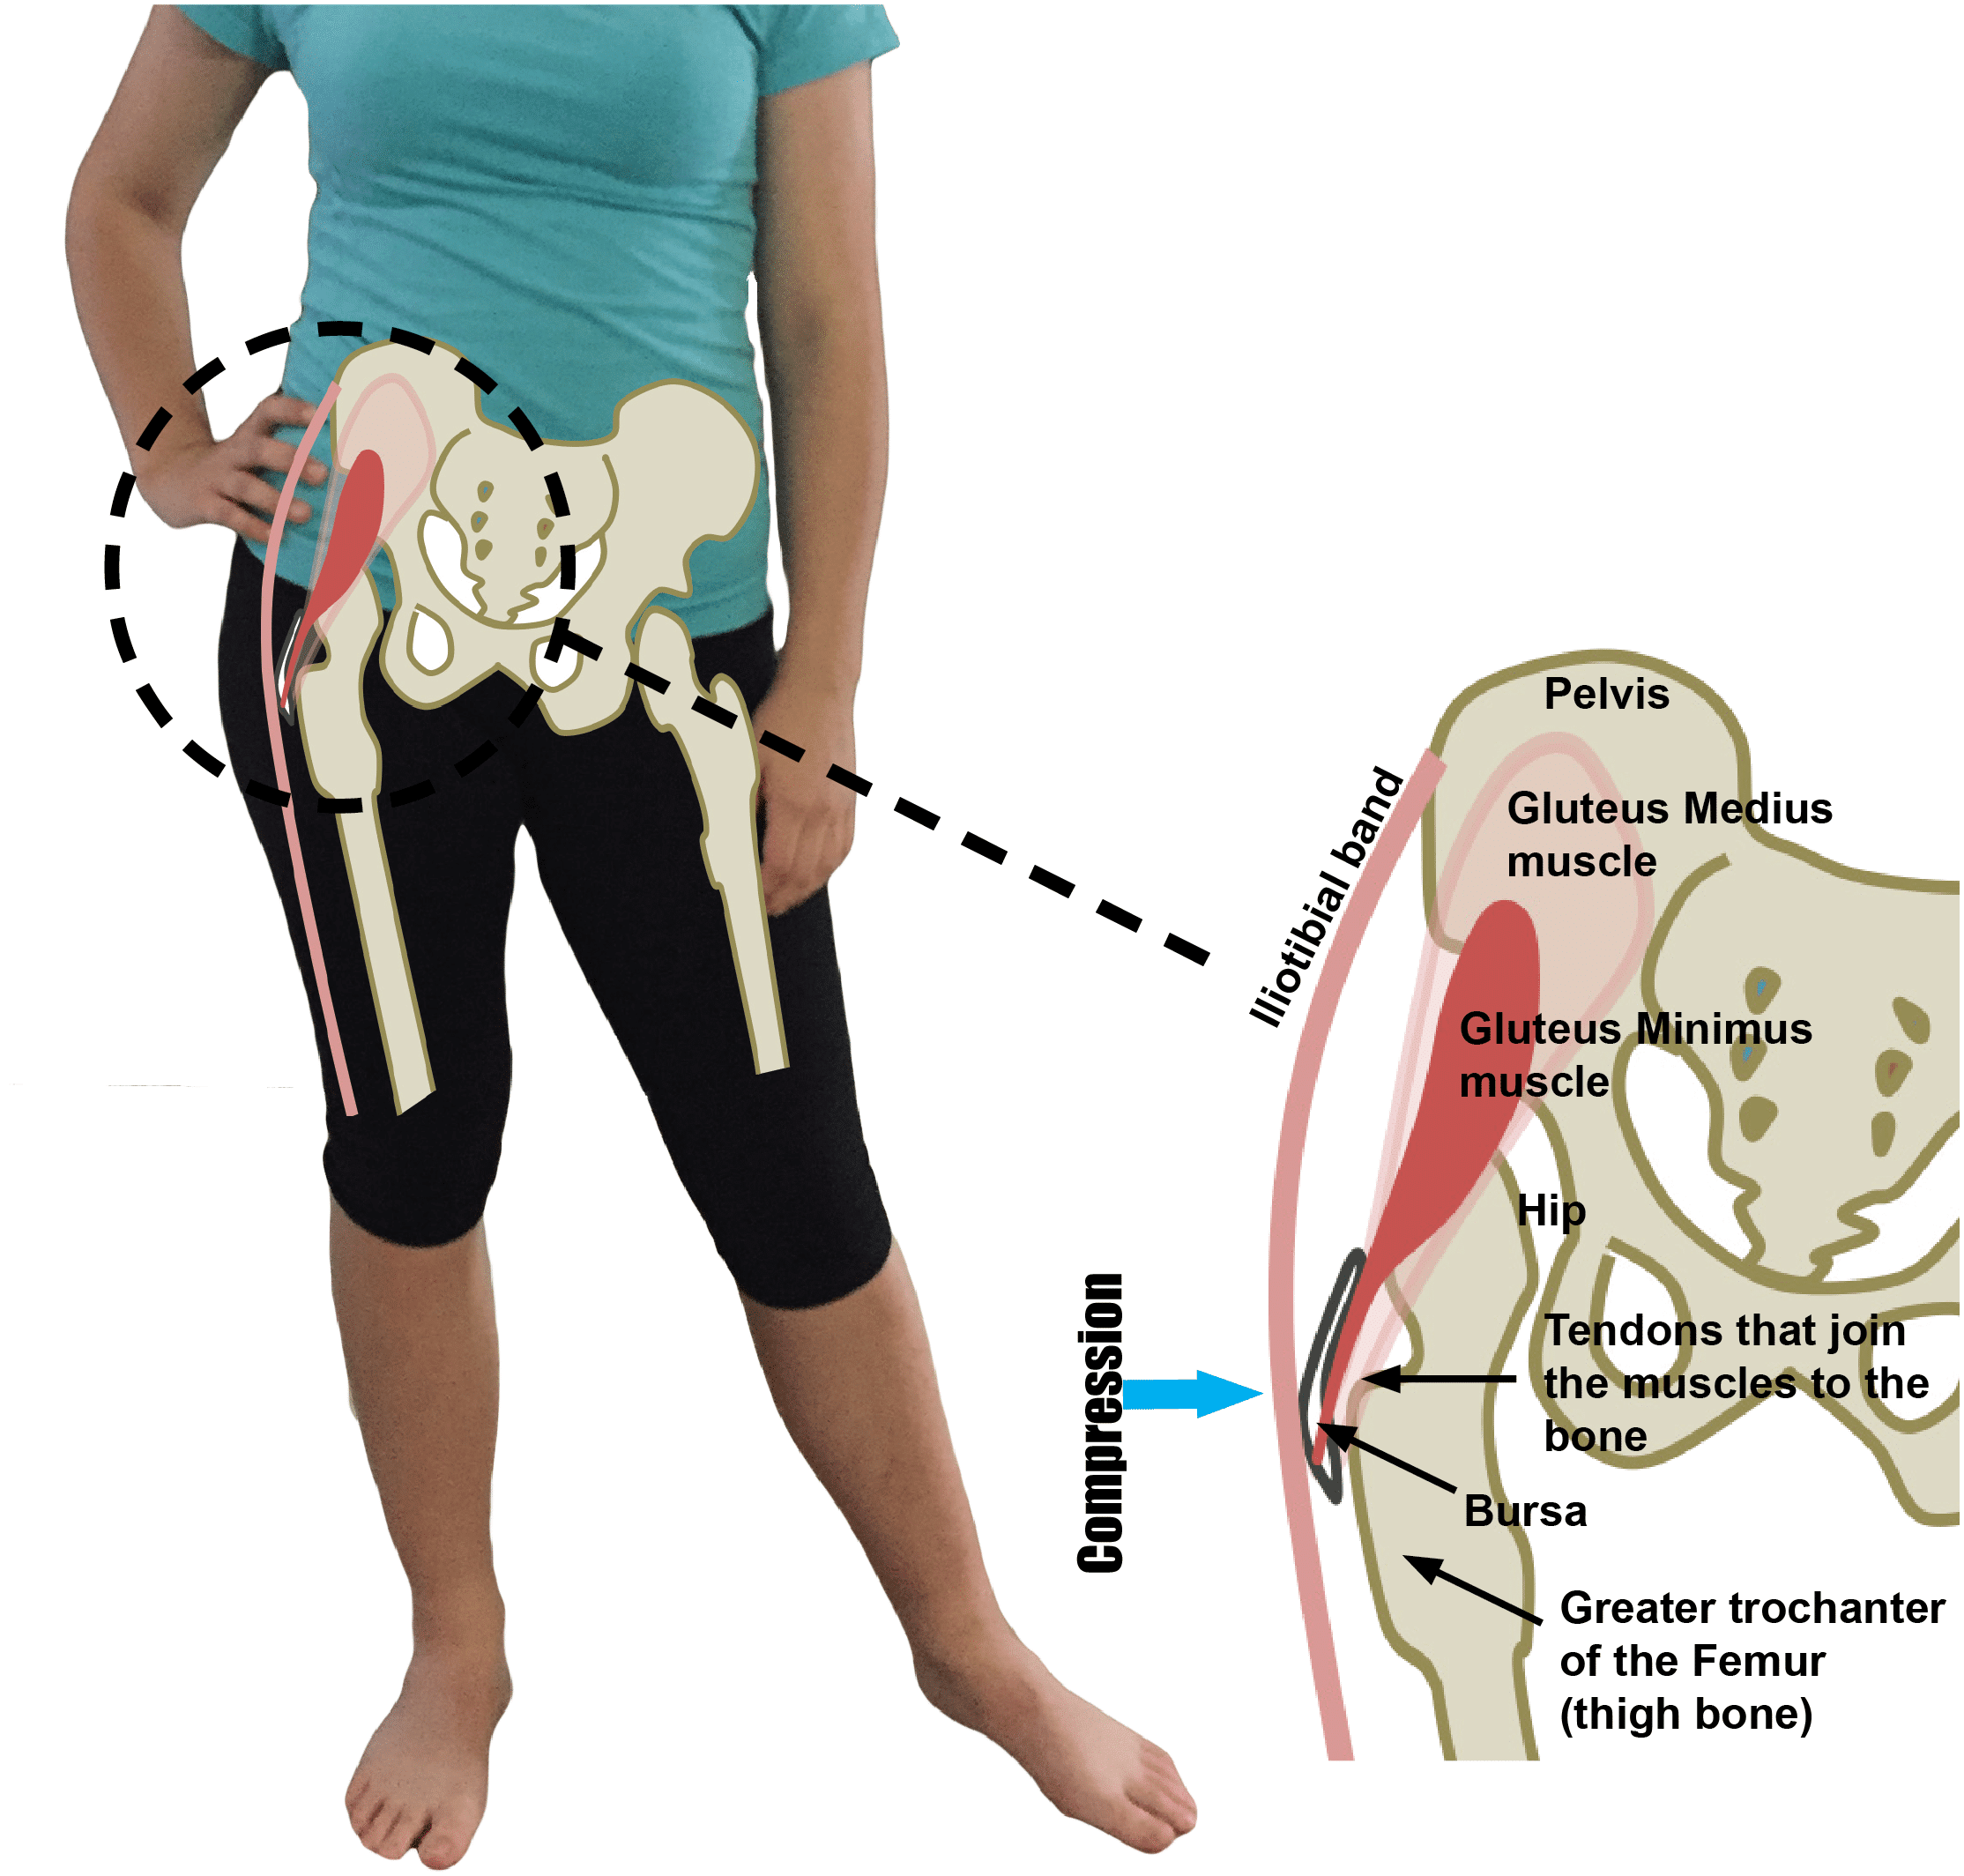 Gluteal Tendinopathy or Trochanteric Bursitis Aggravation with Compression at the Greater Trochanter